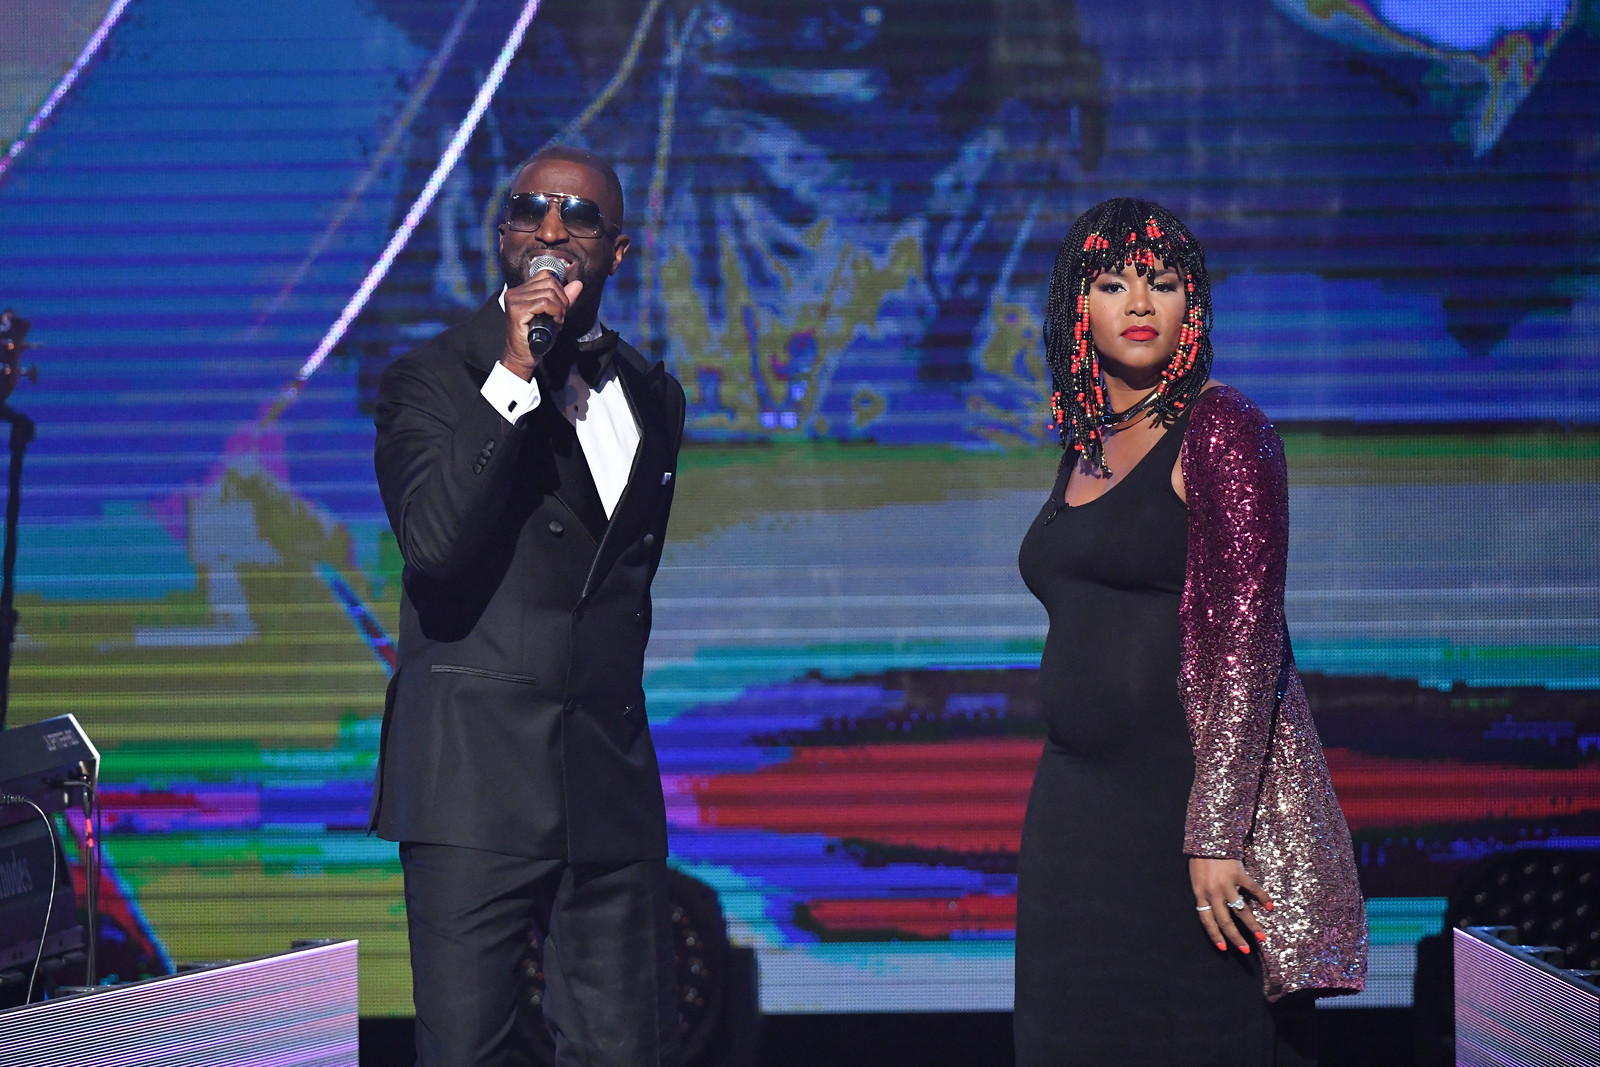 LeToya and Rickey Smiley open the show